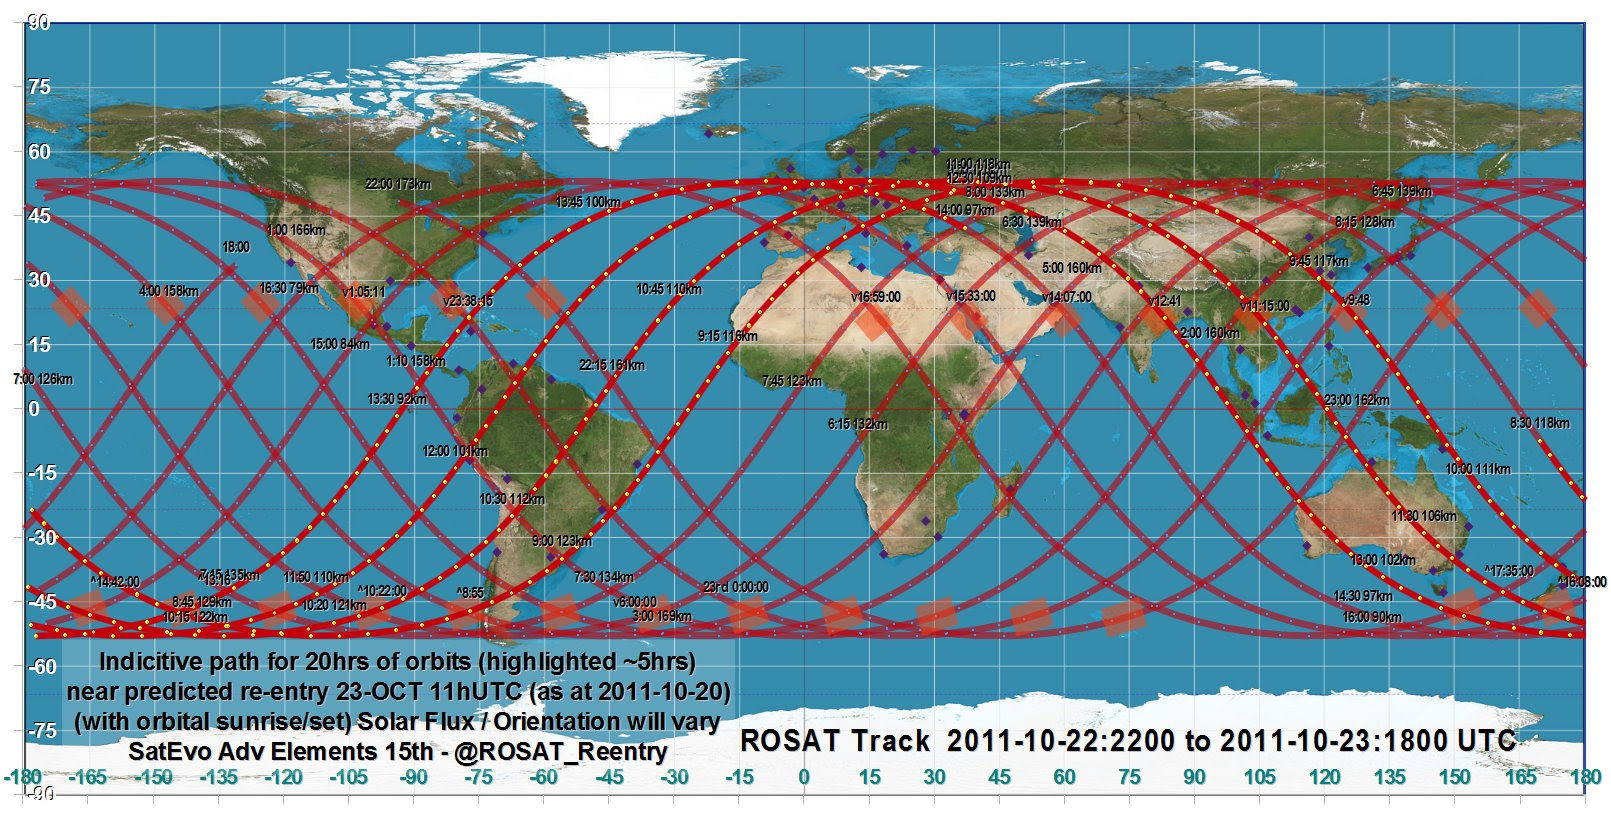 ROSAT Re-entry Tracks 2011-10-20